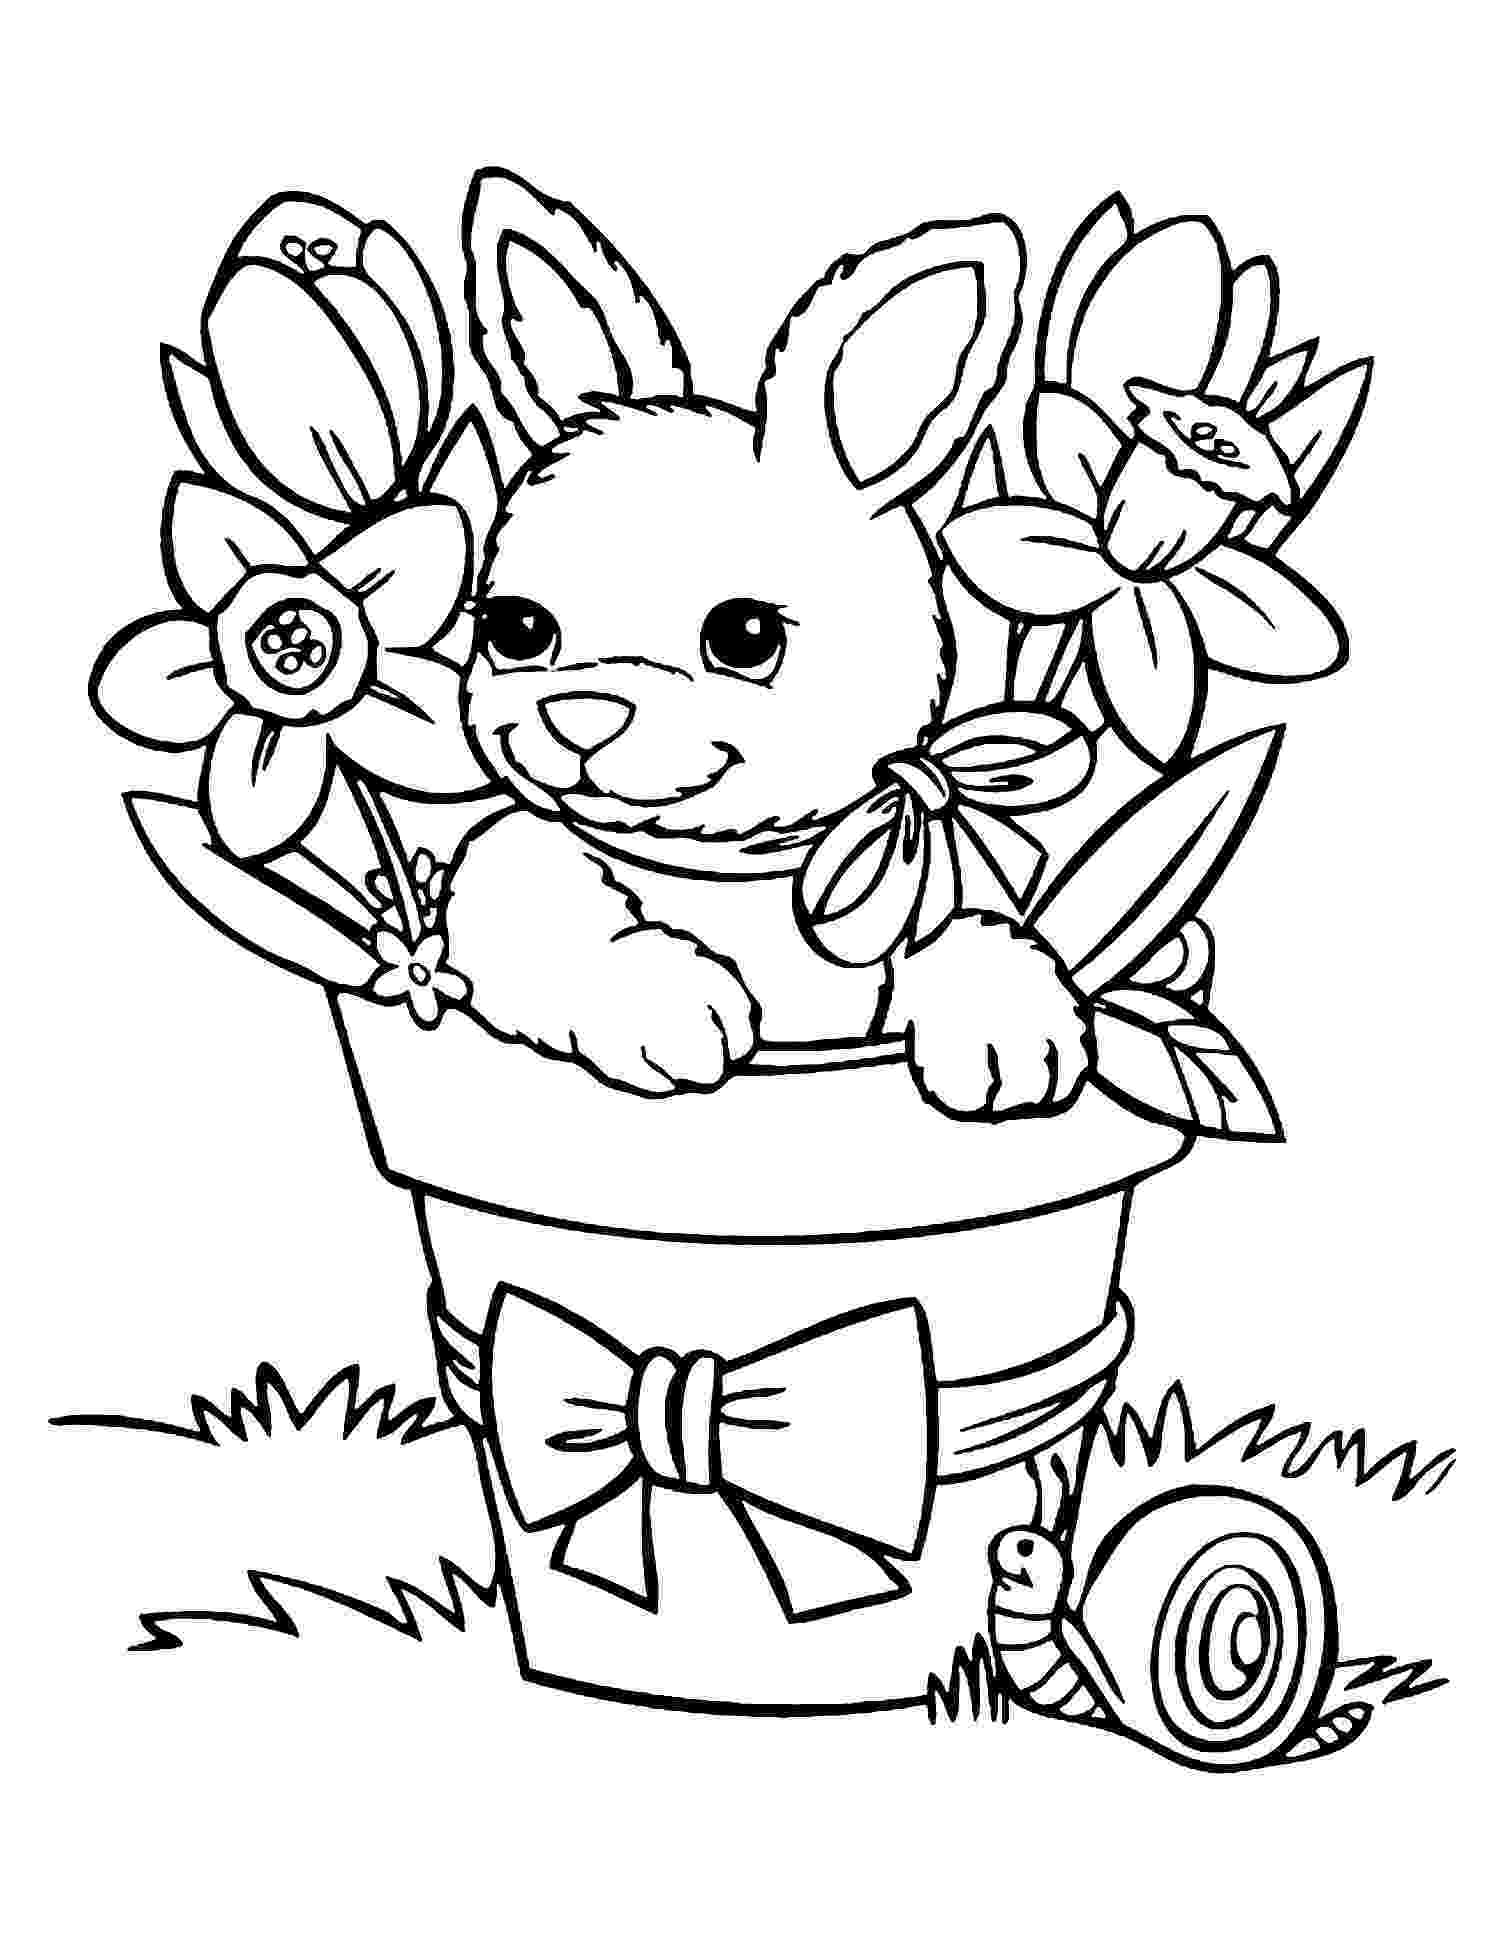 rabbit coloring pictures free printable rabbit coloring pages for kids coloring pictures rabbit